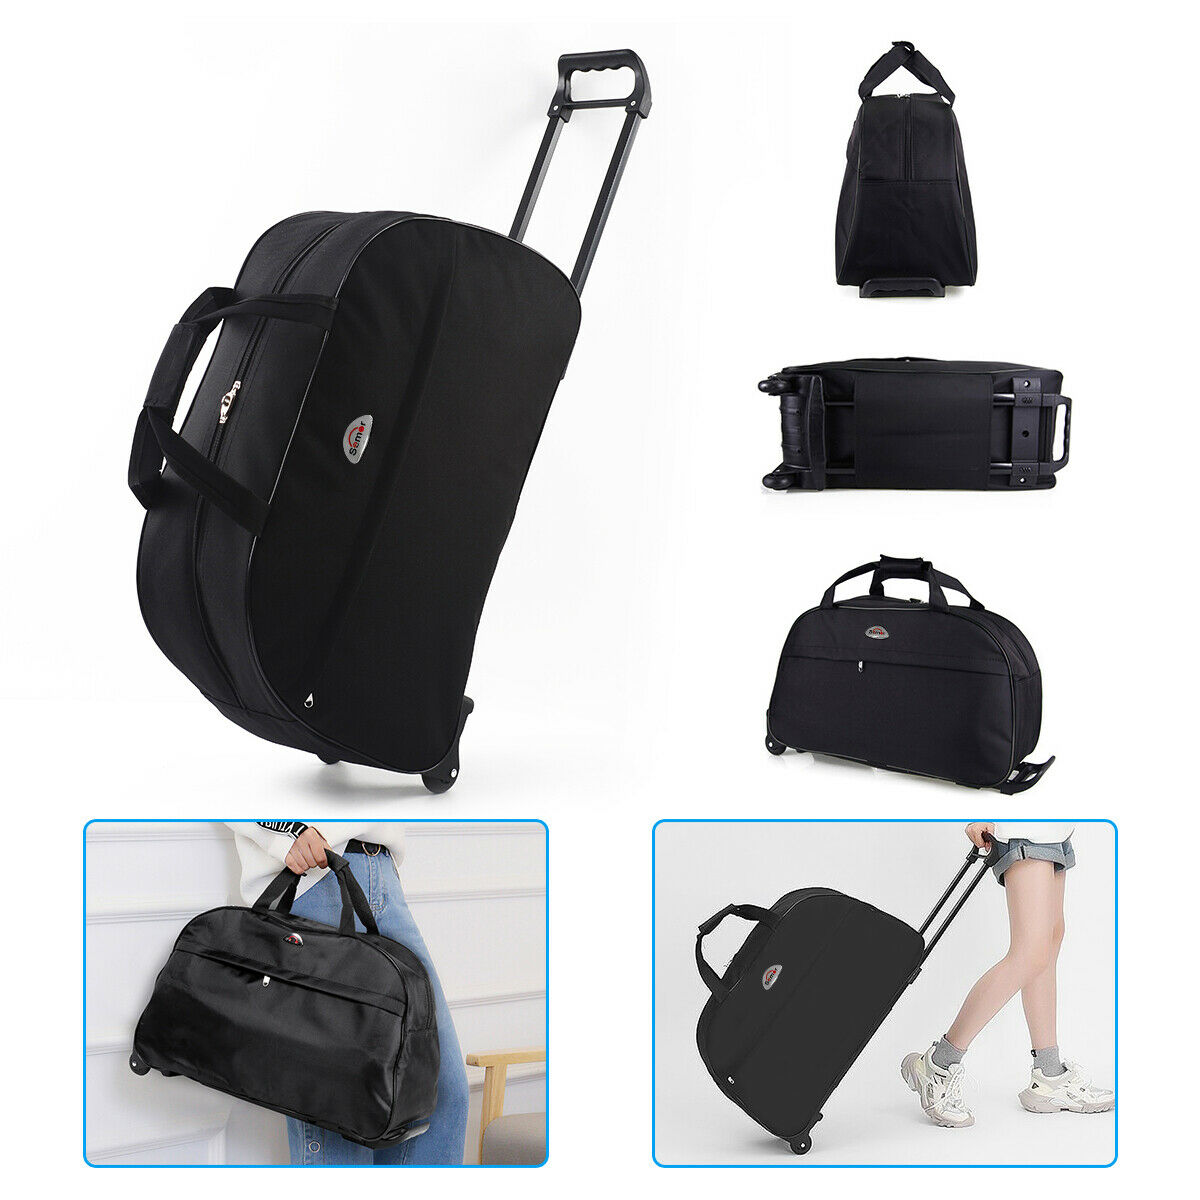 Duffle Bag 24 Rolling Wheeled Trolley Bag Tote Carry On Luggage Travel Suitcase